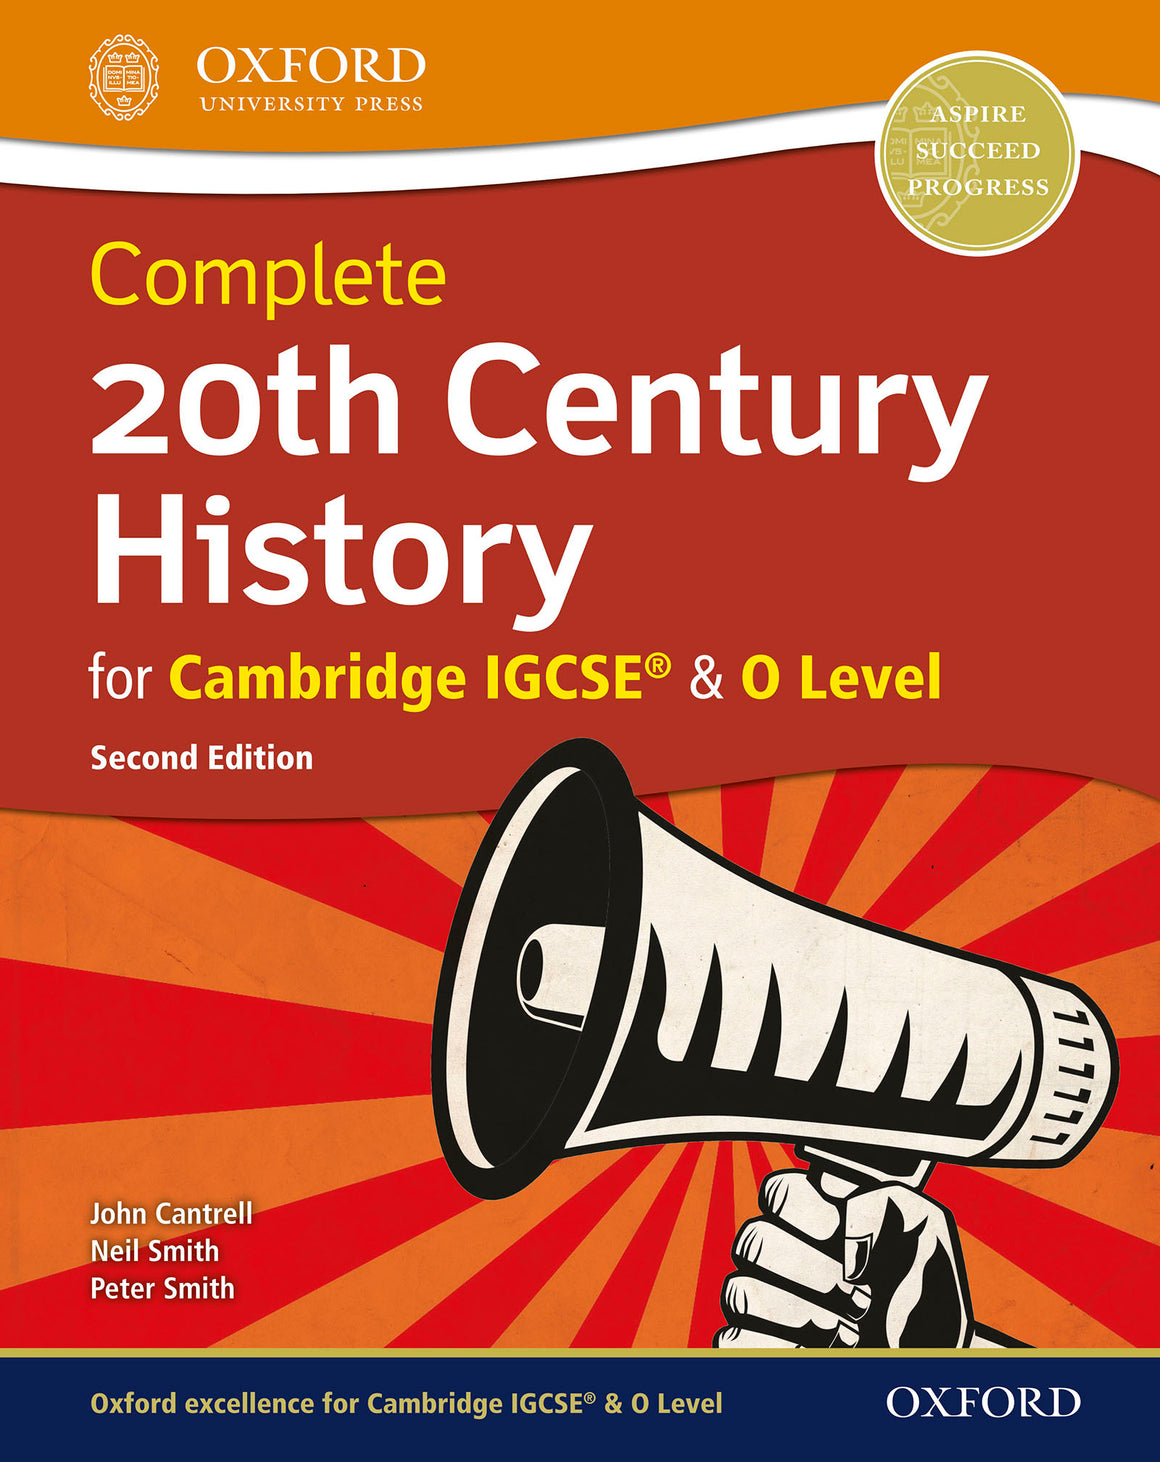 Complete 20th Century History for Cambridge IGCSE® & O Level